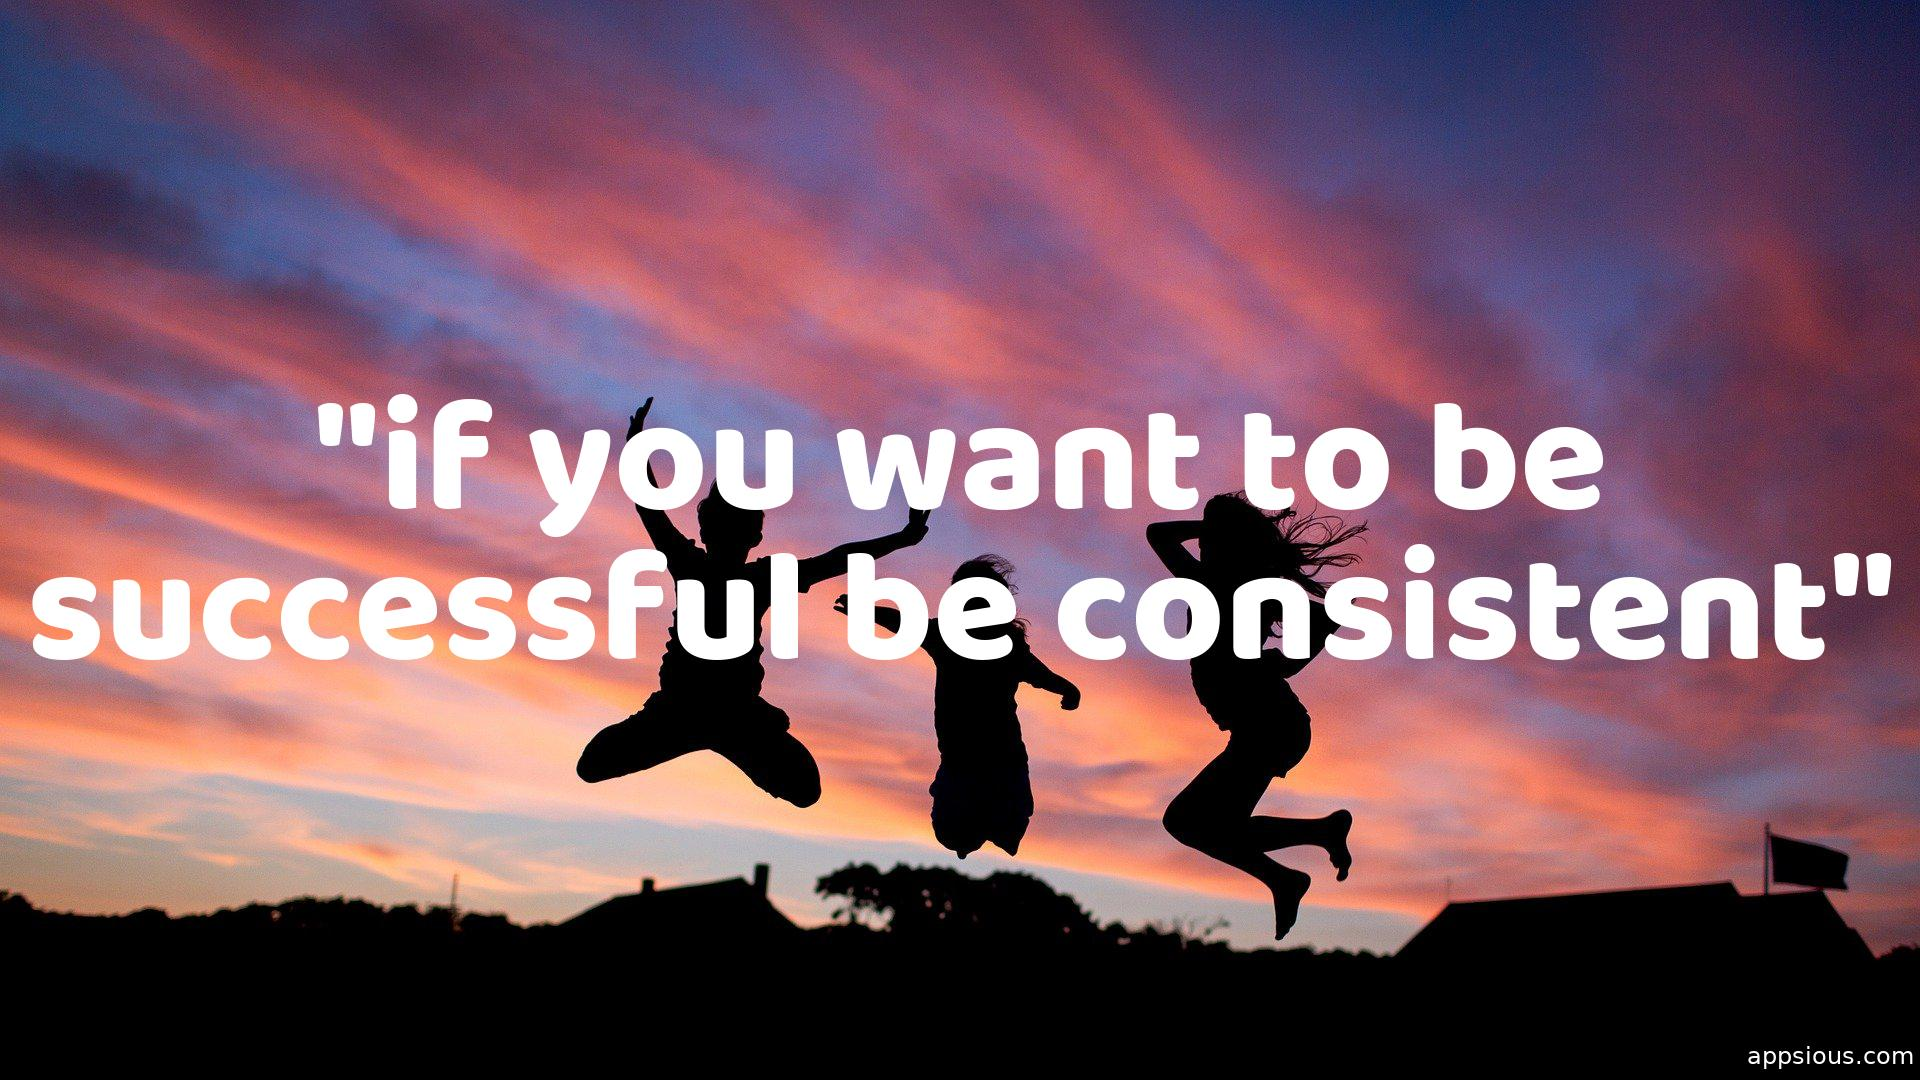 If you want to be successful, Be consistent